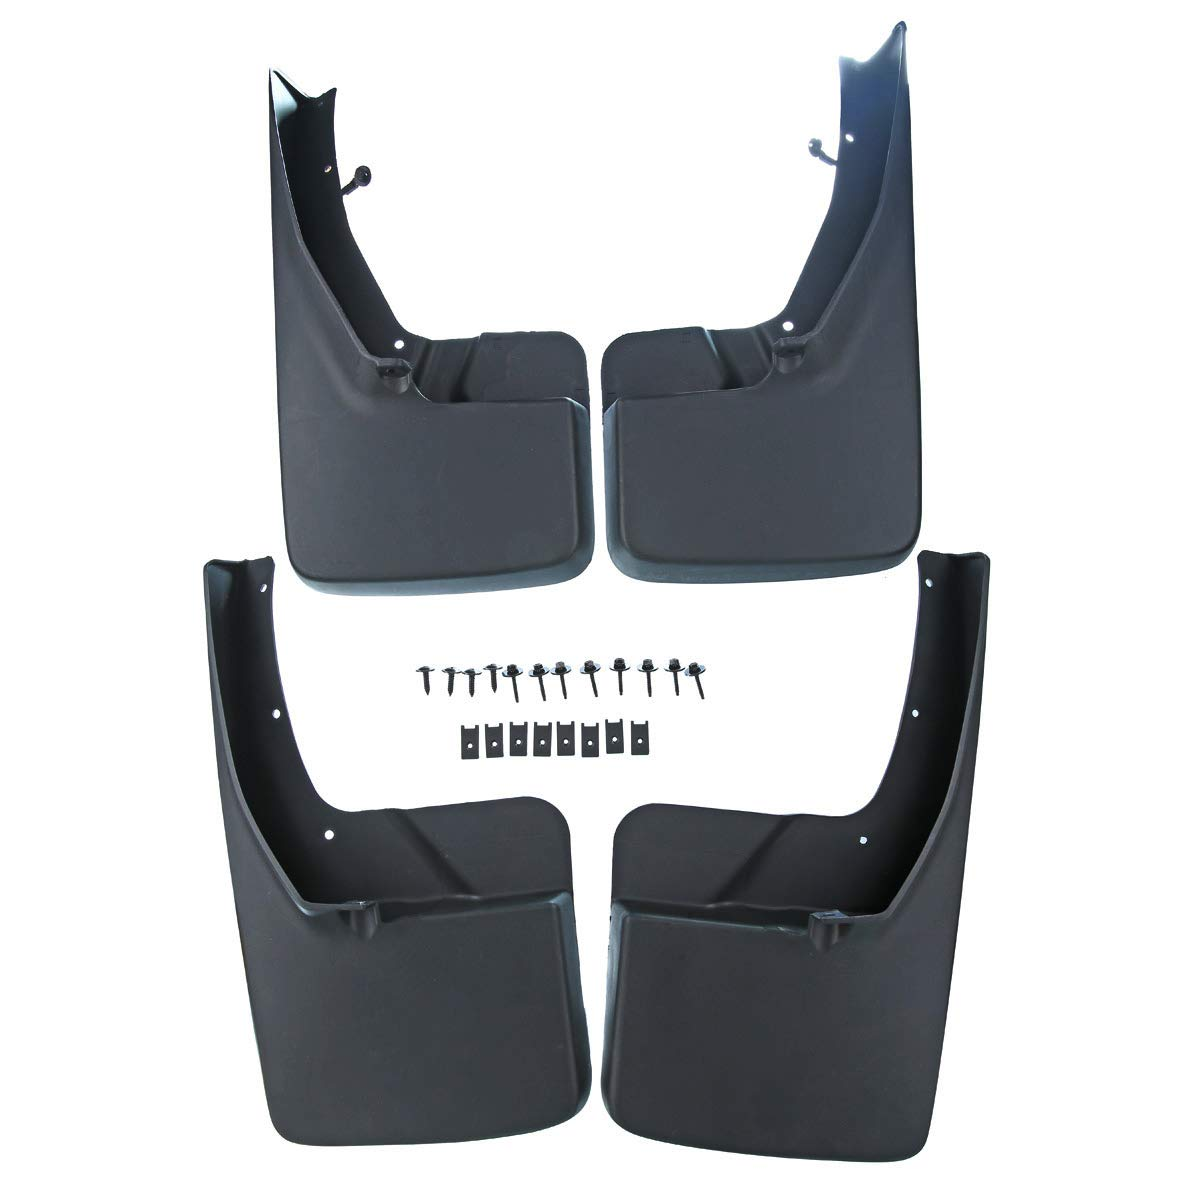 A-Premium Splash Guards Mud Flaps Mudflaps for Dodge Ram 1500 2500 3500 2009-2017 Without Factory Fender Flares Front and Rear 4-PC Set PremiumpartsWhosale